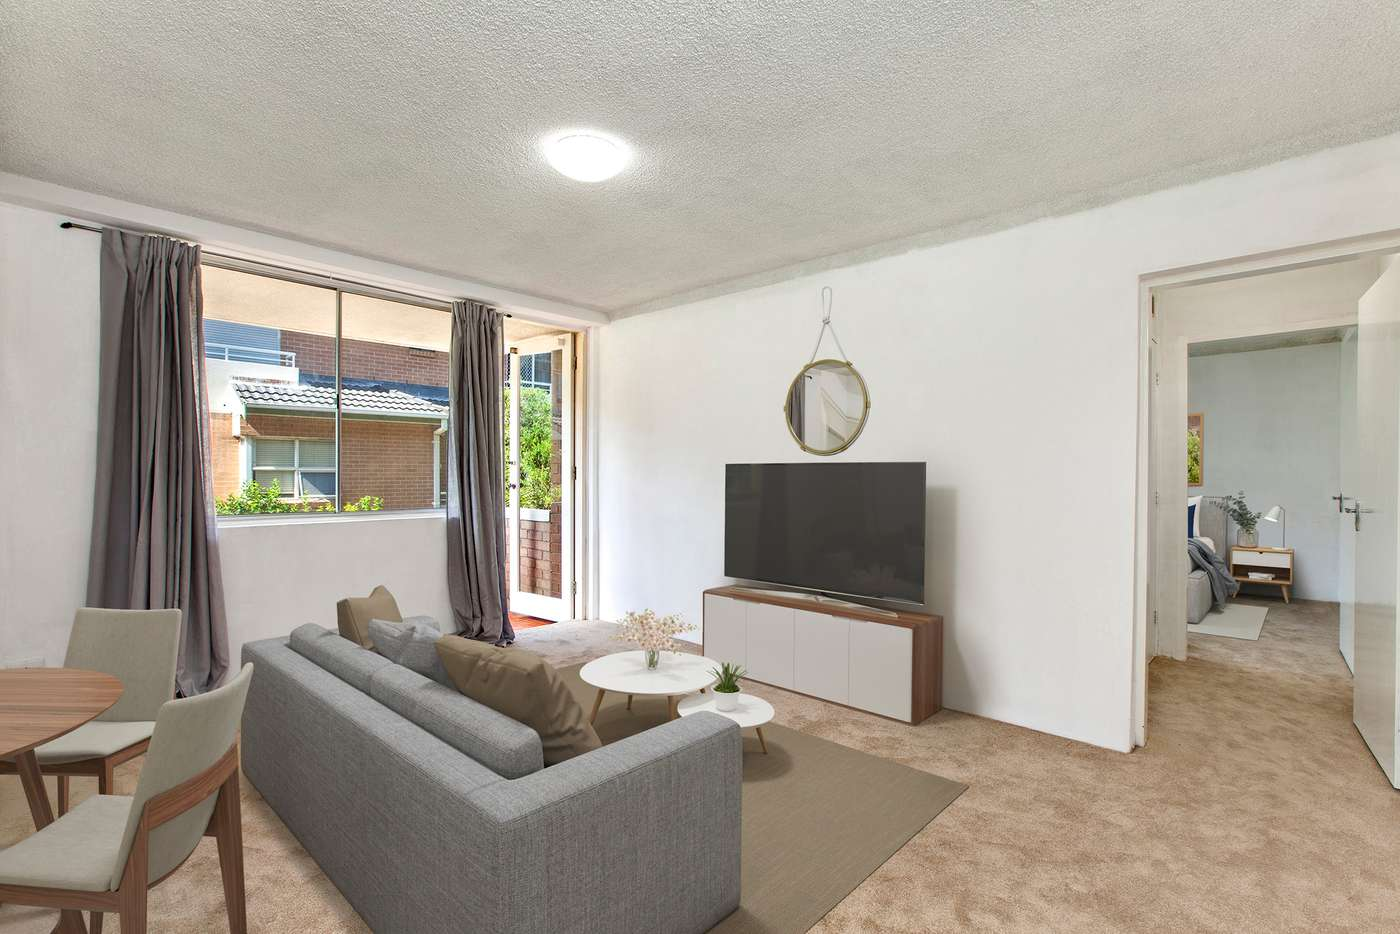 Main view of Homely apartment listing, 3/857 Anzac Parade, Maroubra NSW 2035